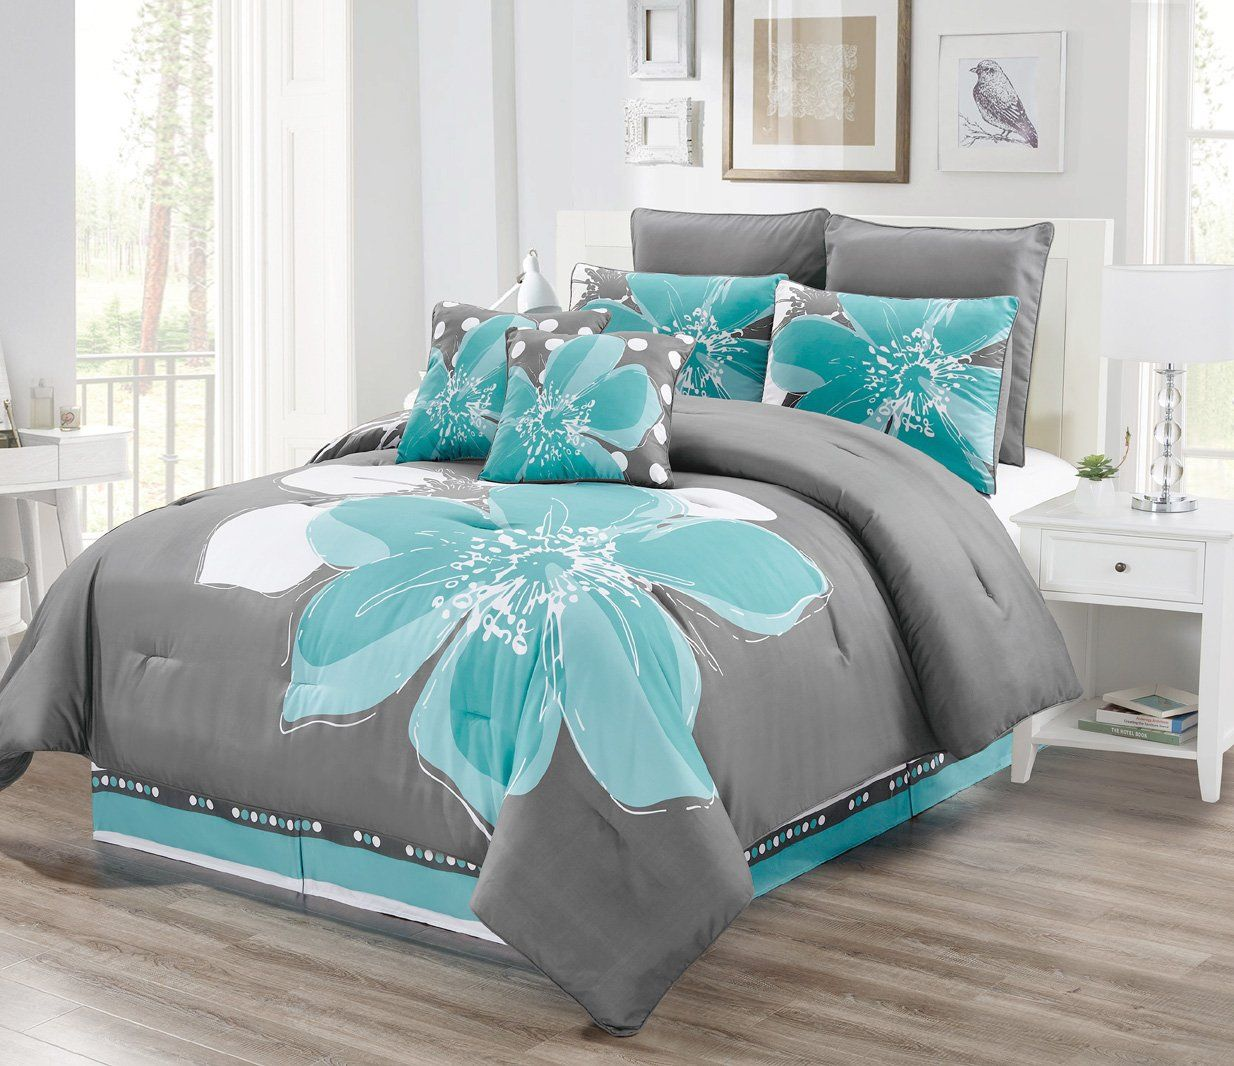 8 Piece Aqua Blue Grey White Floral Comforter Set Queen Size Bedding Accent Pillows Be Blue And Grey Bedding Blue Comforter Sets Grey And Teal Bedding